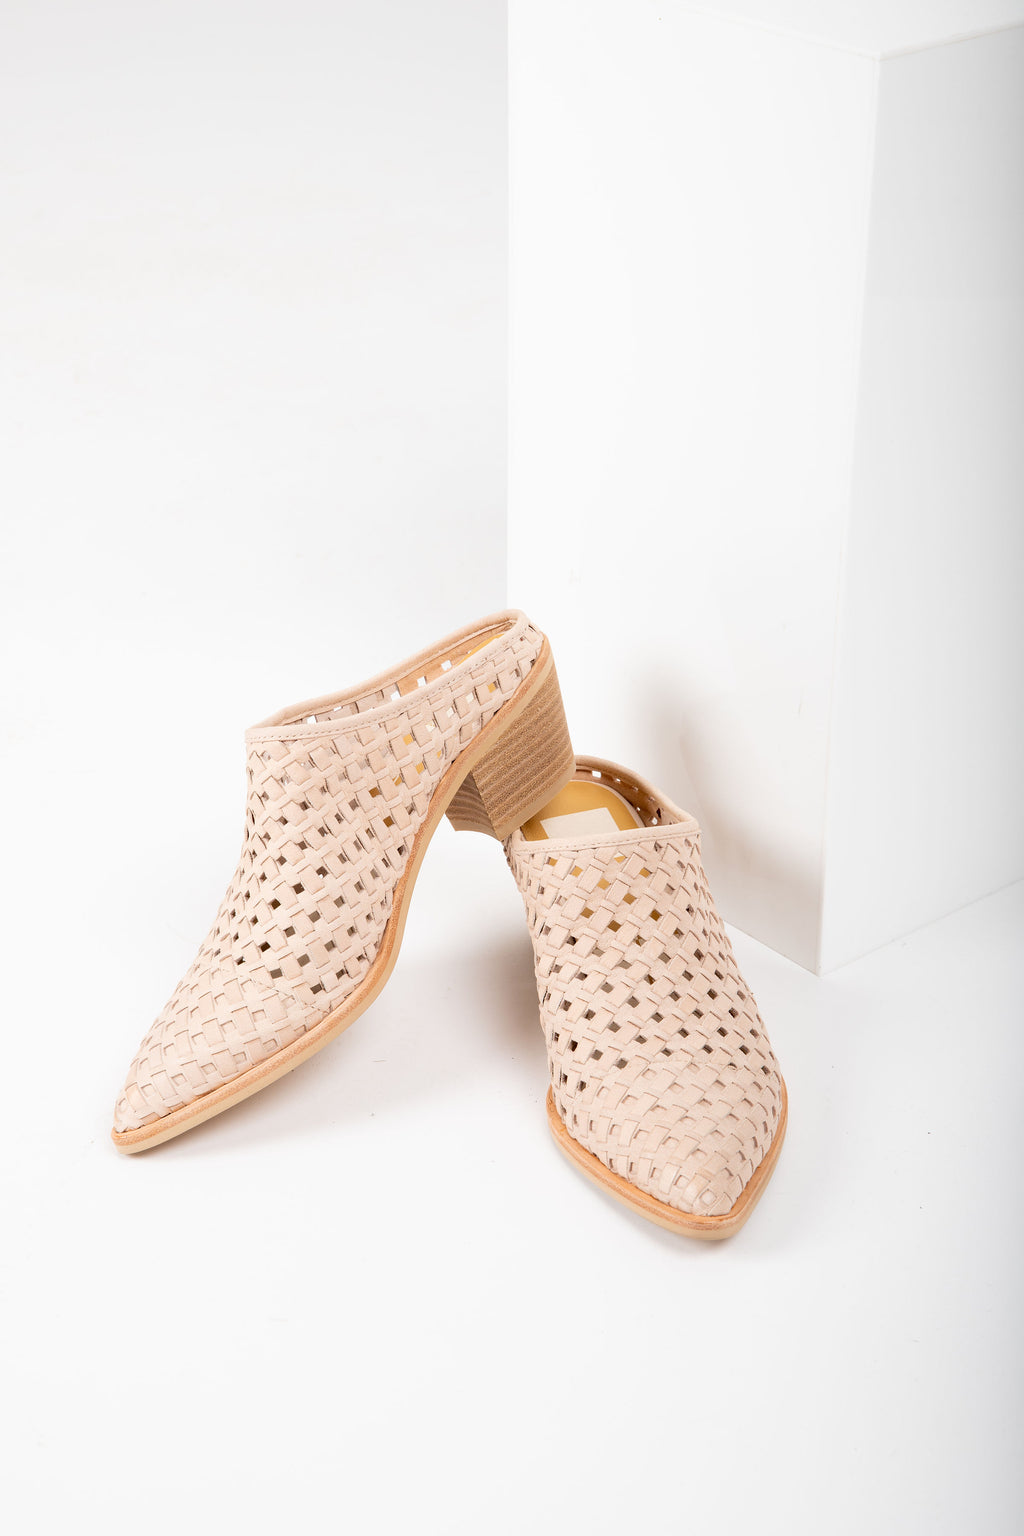 Dolce Vita: Sayer Booties in Sand